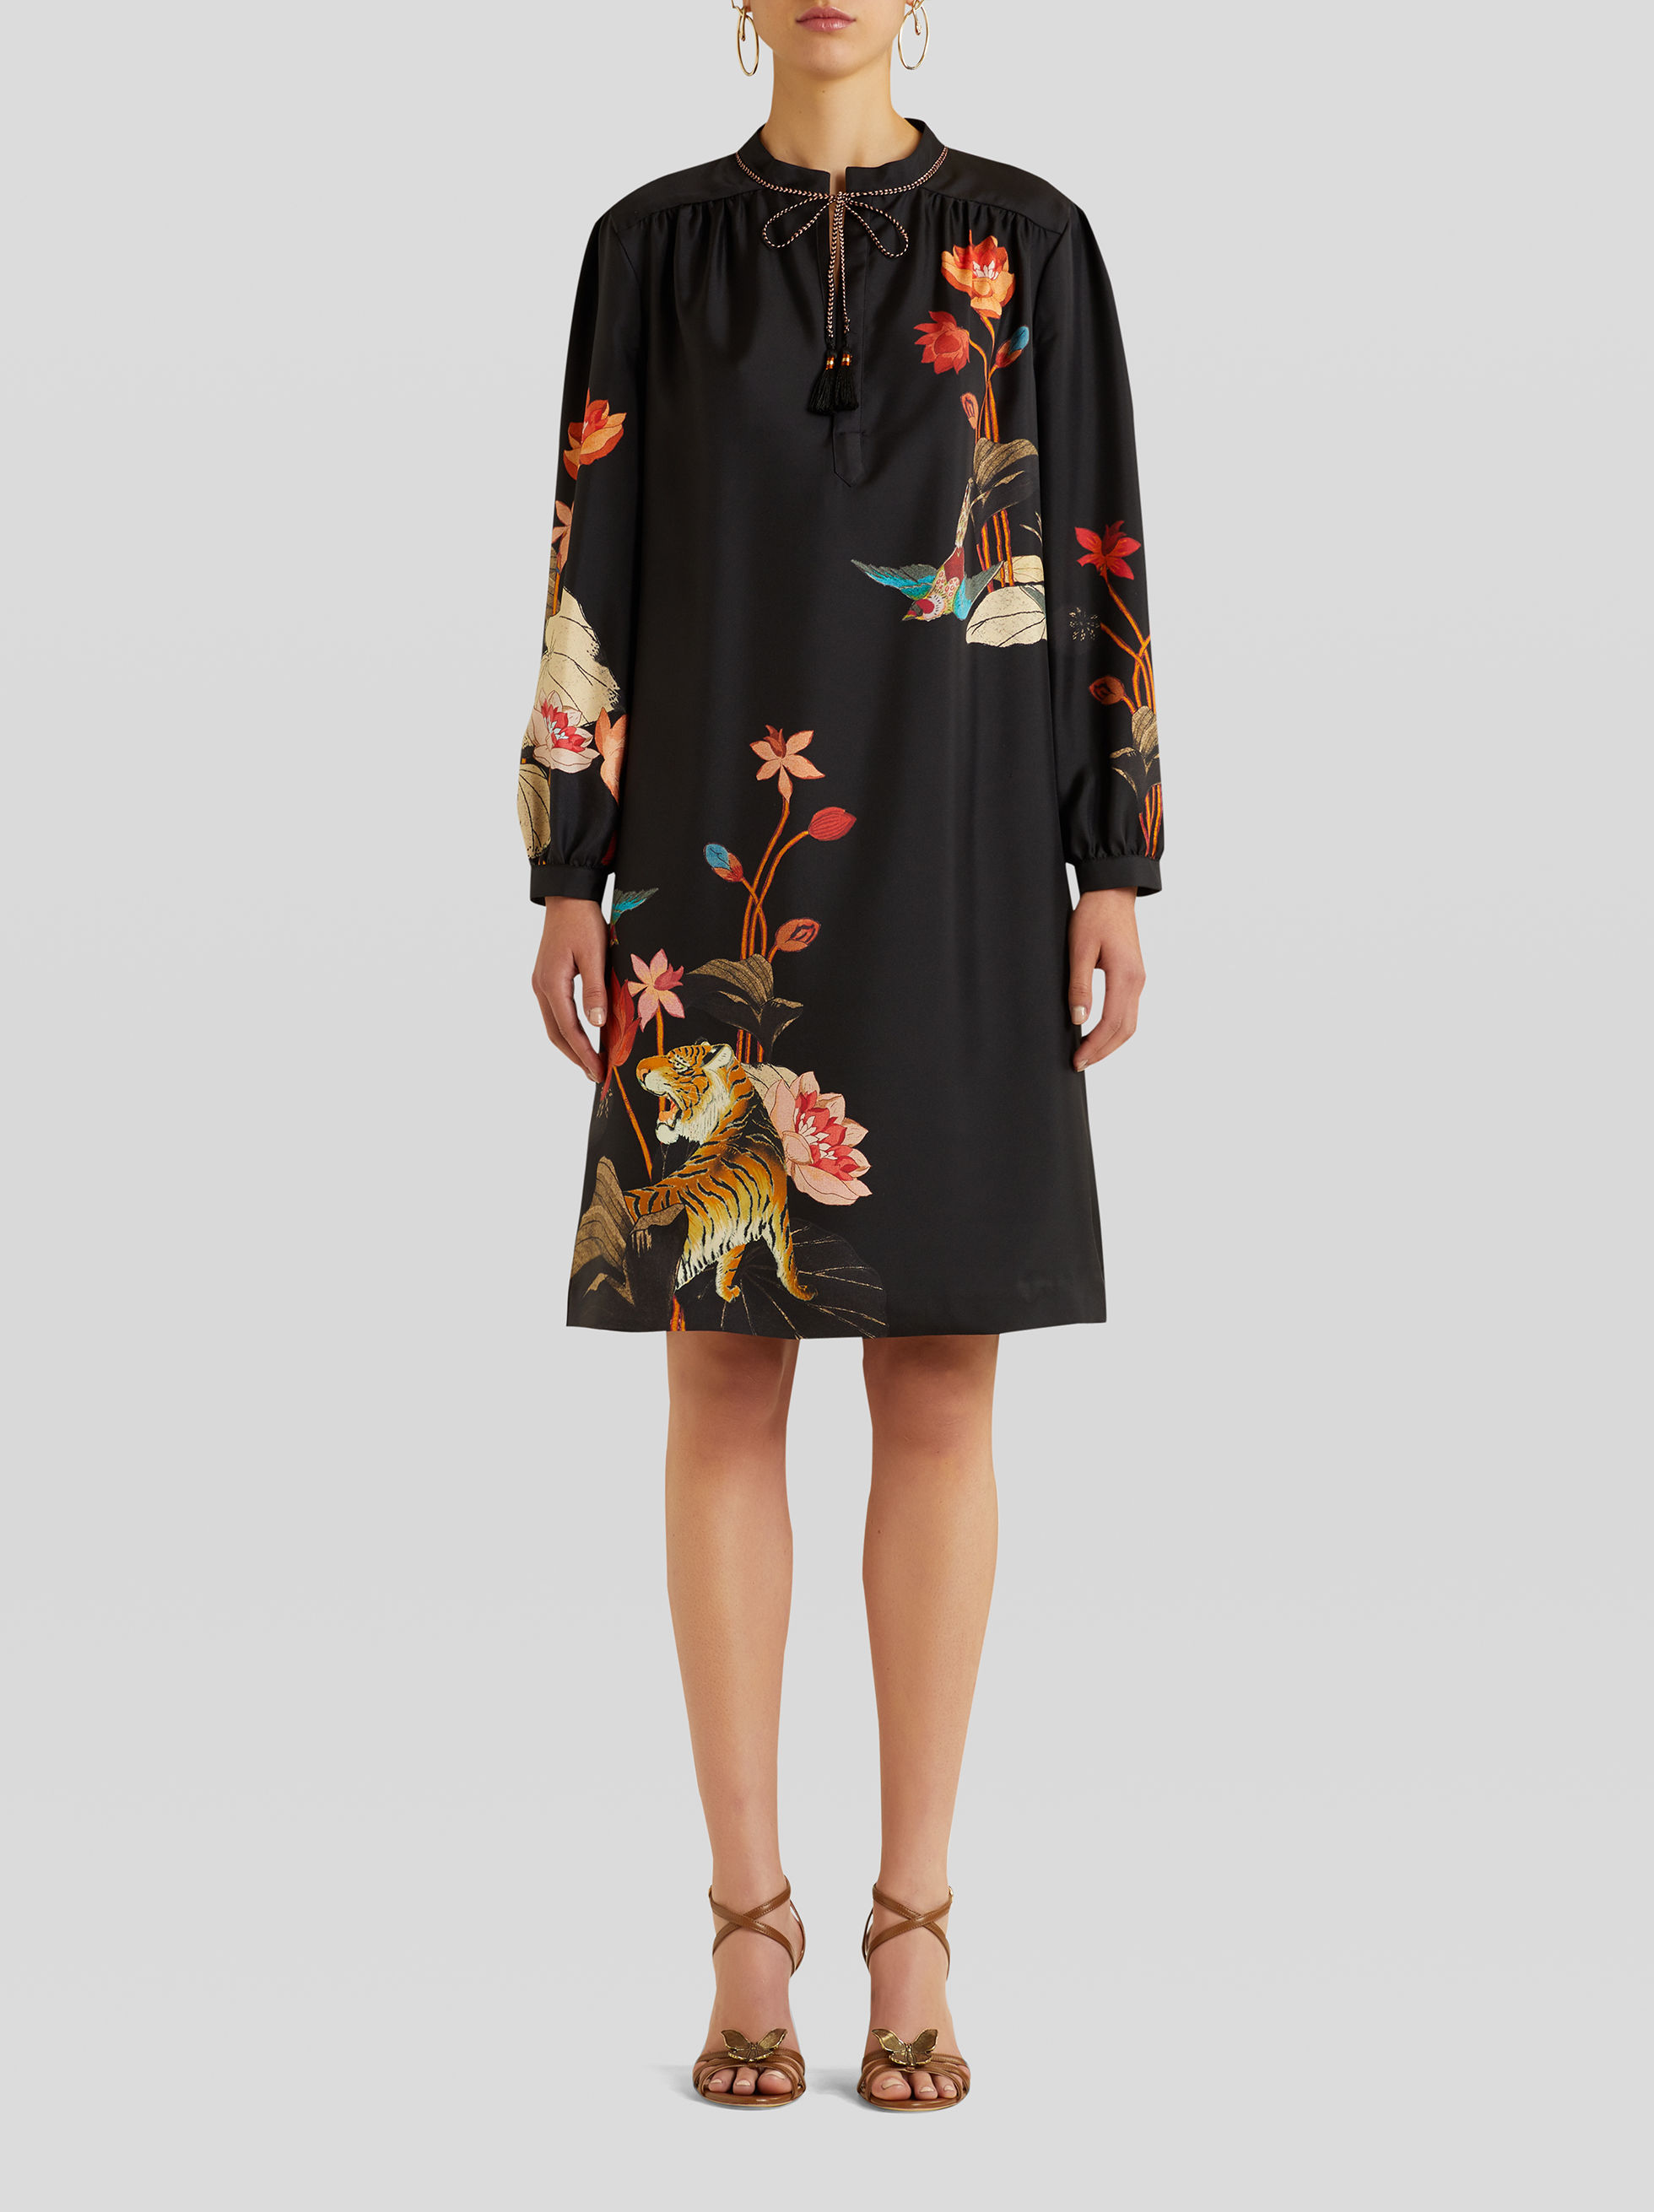 Etro Silks TIGER AND WATER LILY DESIGN SILK DRESS